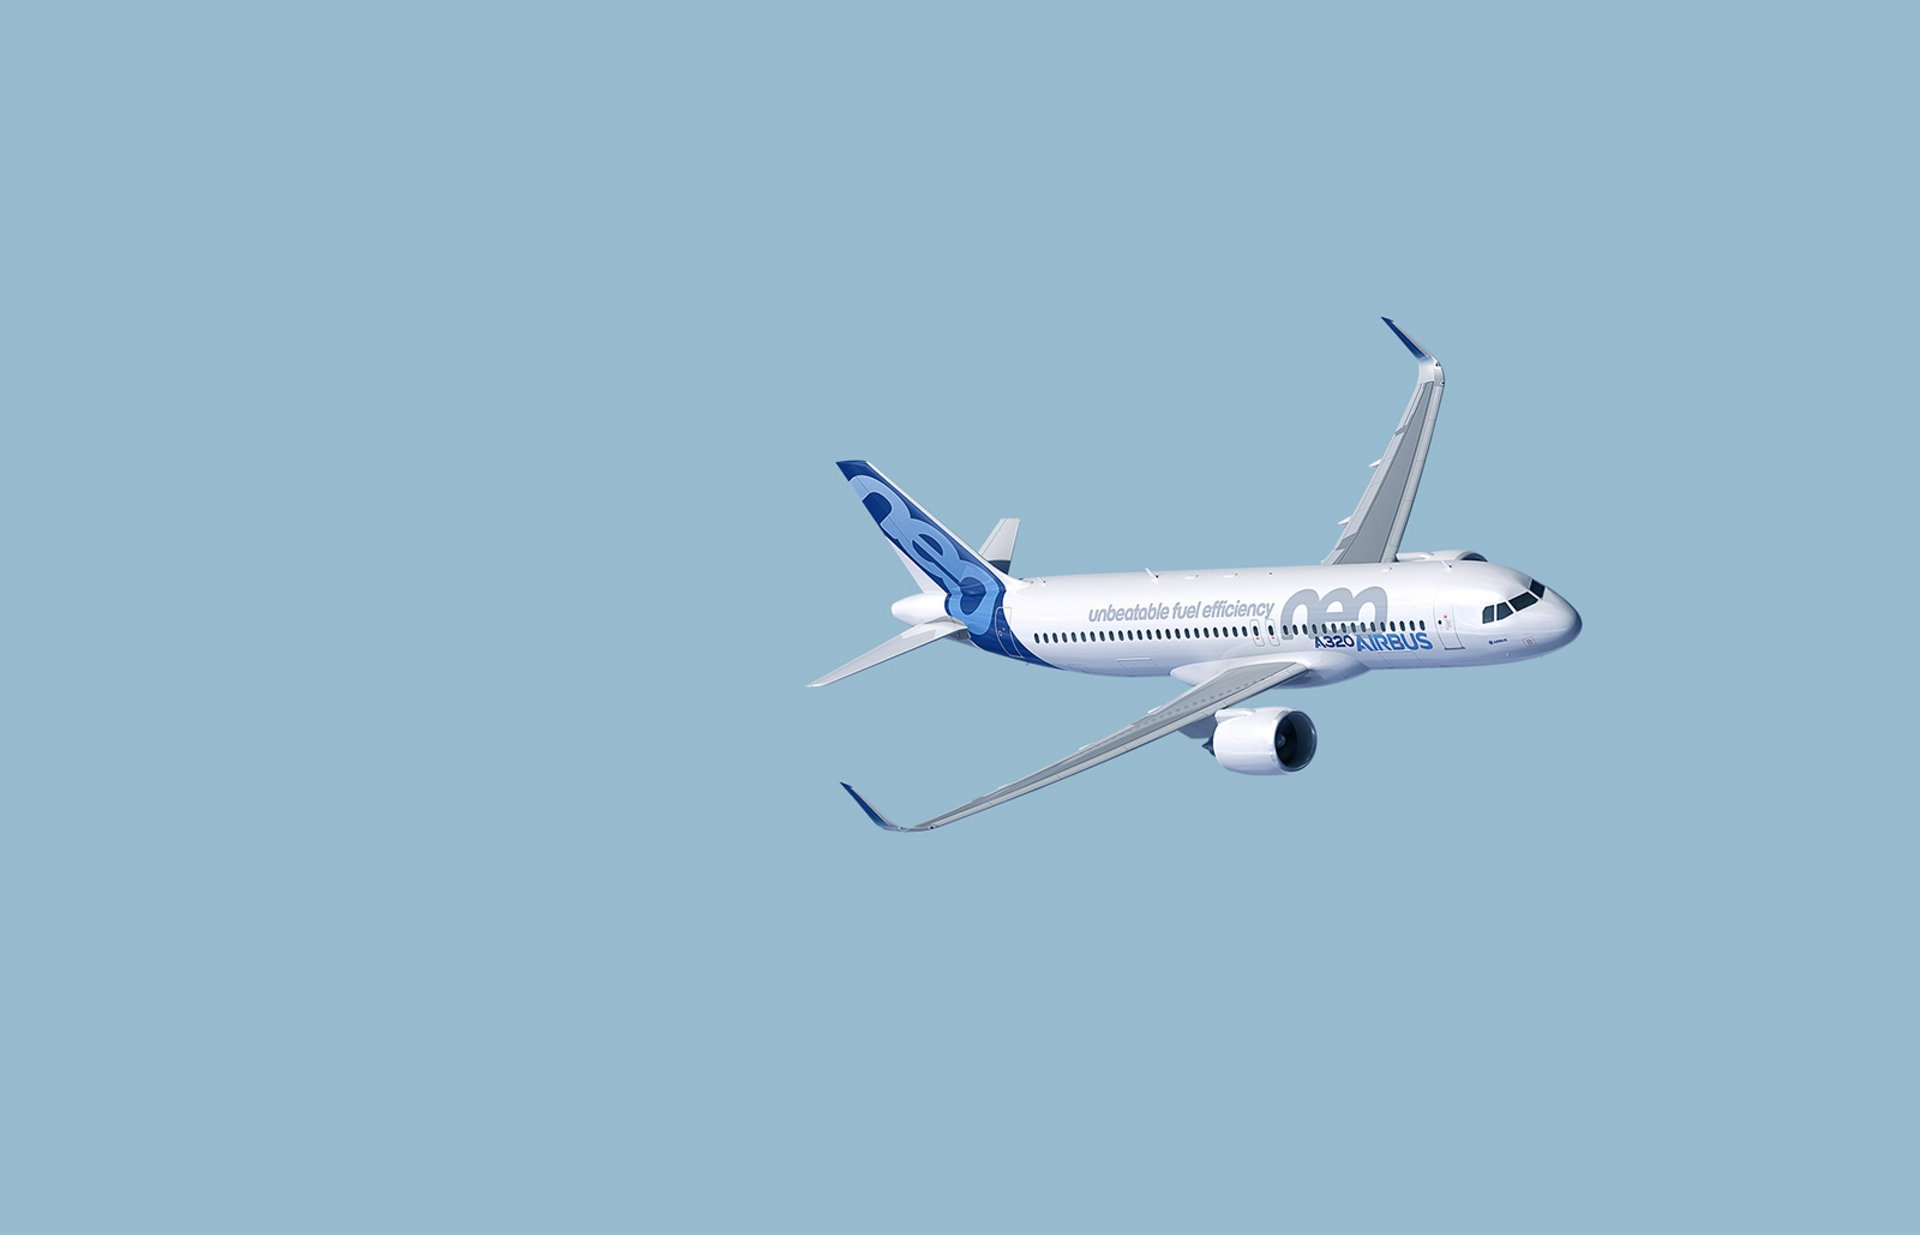 A320neo in flight